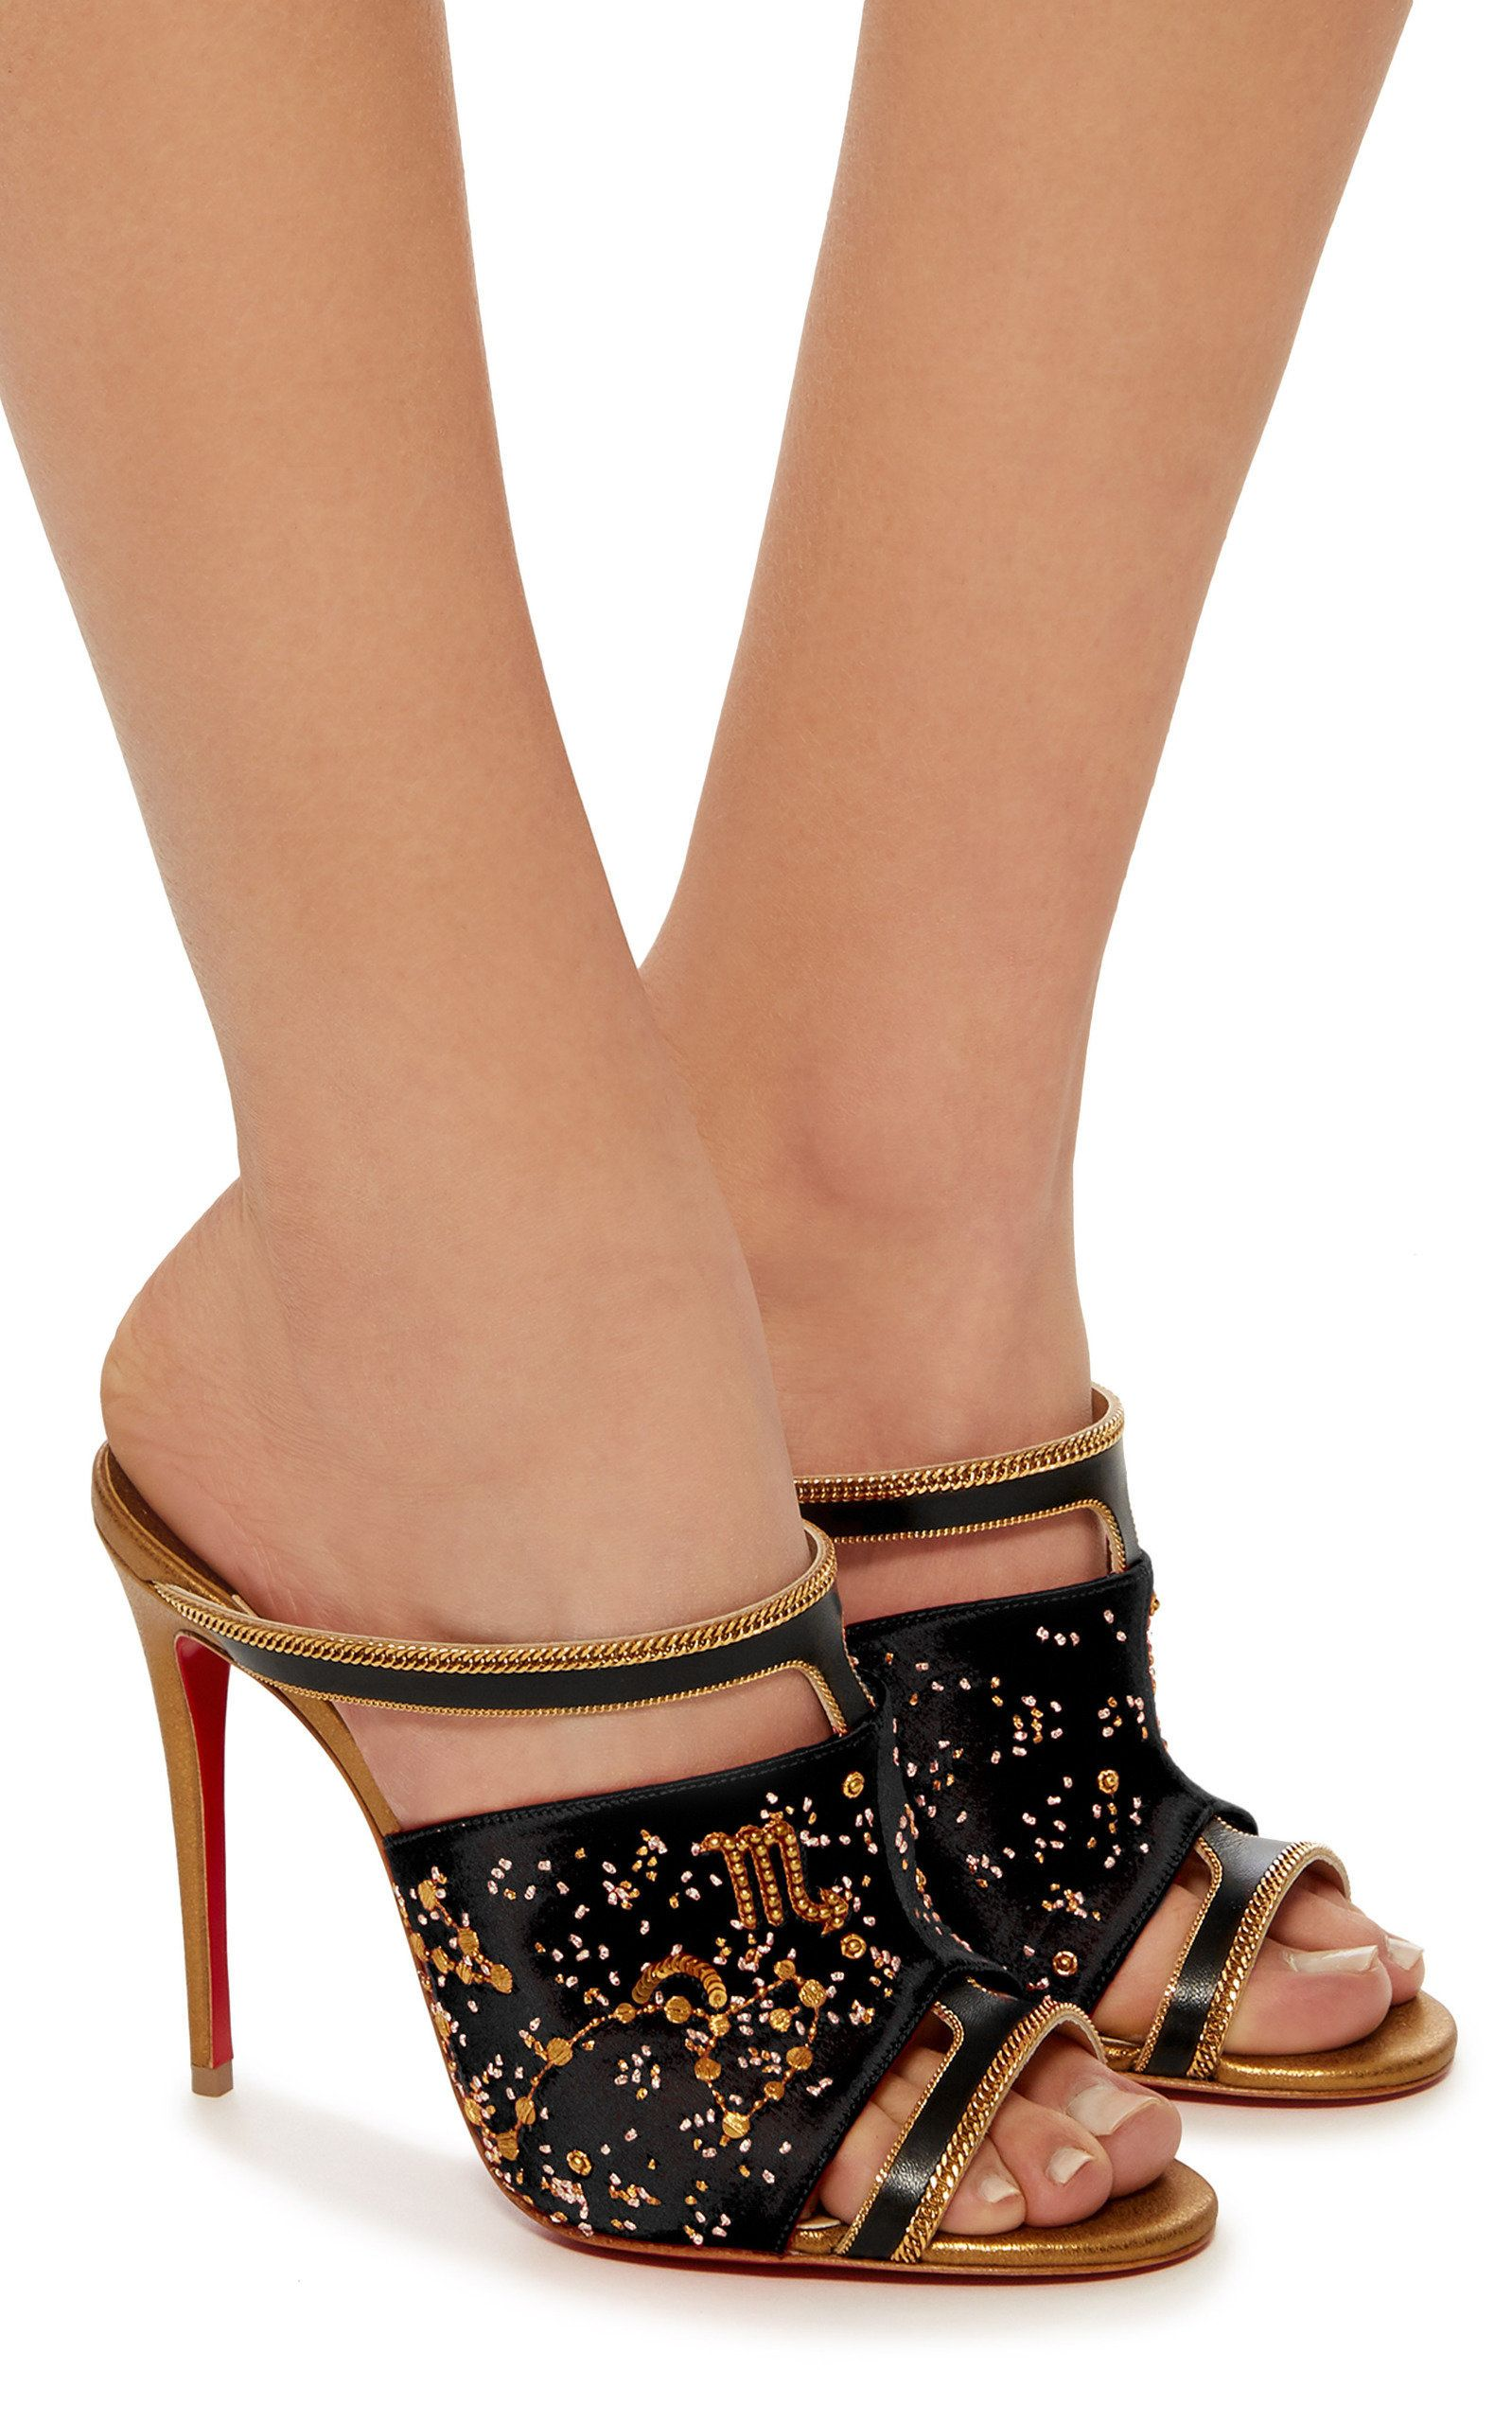 31f6552325b This limited edition M O Exclusive  Christian Louboutin mule is rendered in  satin and features an intricate embroidered detail and minimalist  silhouette.